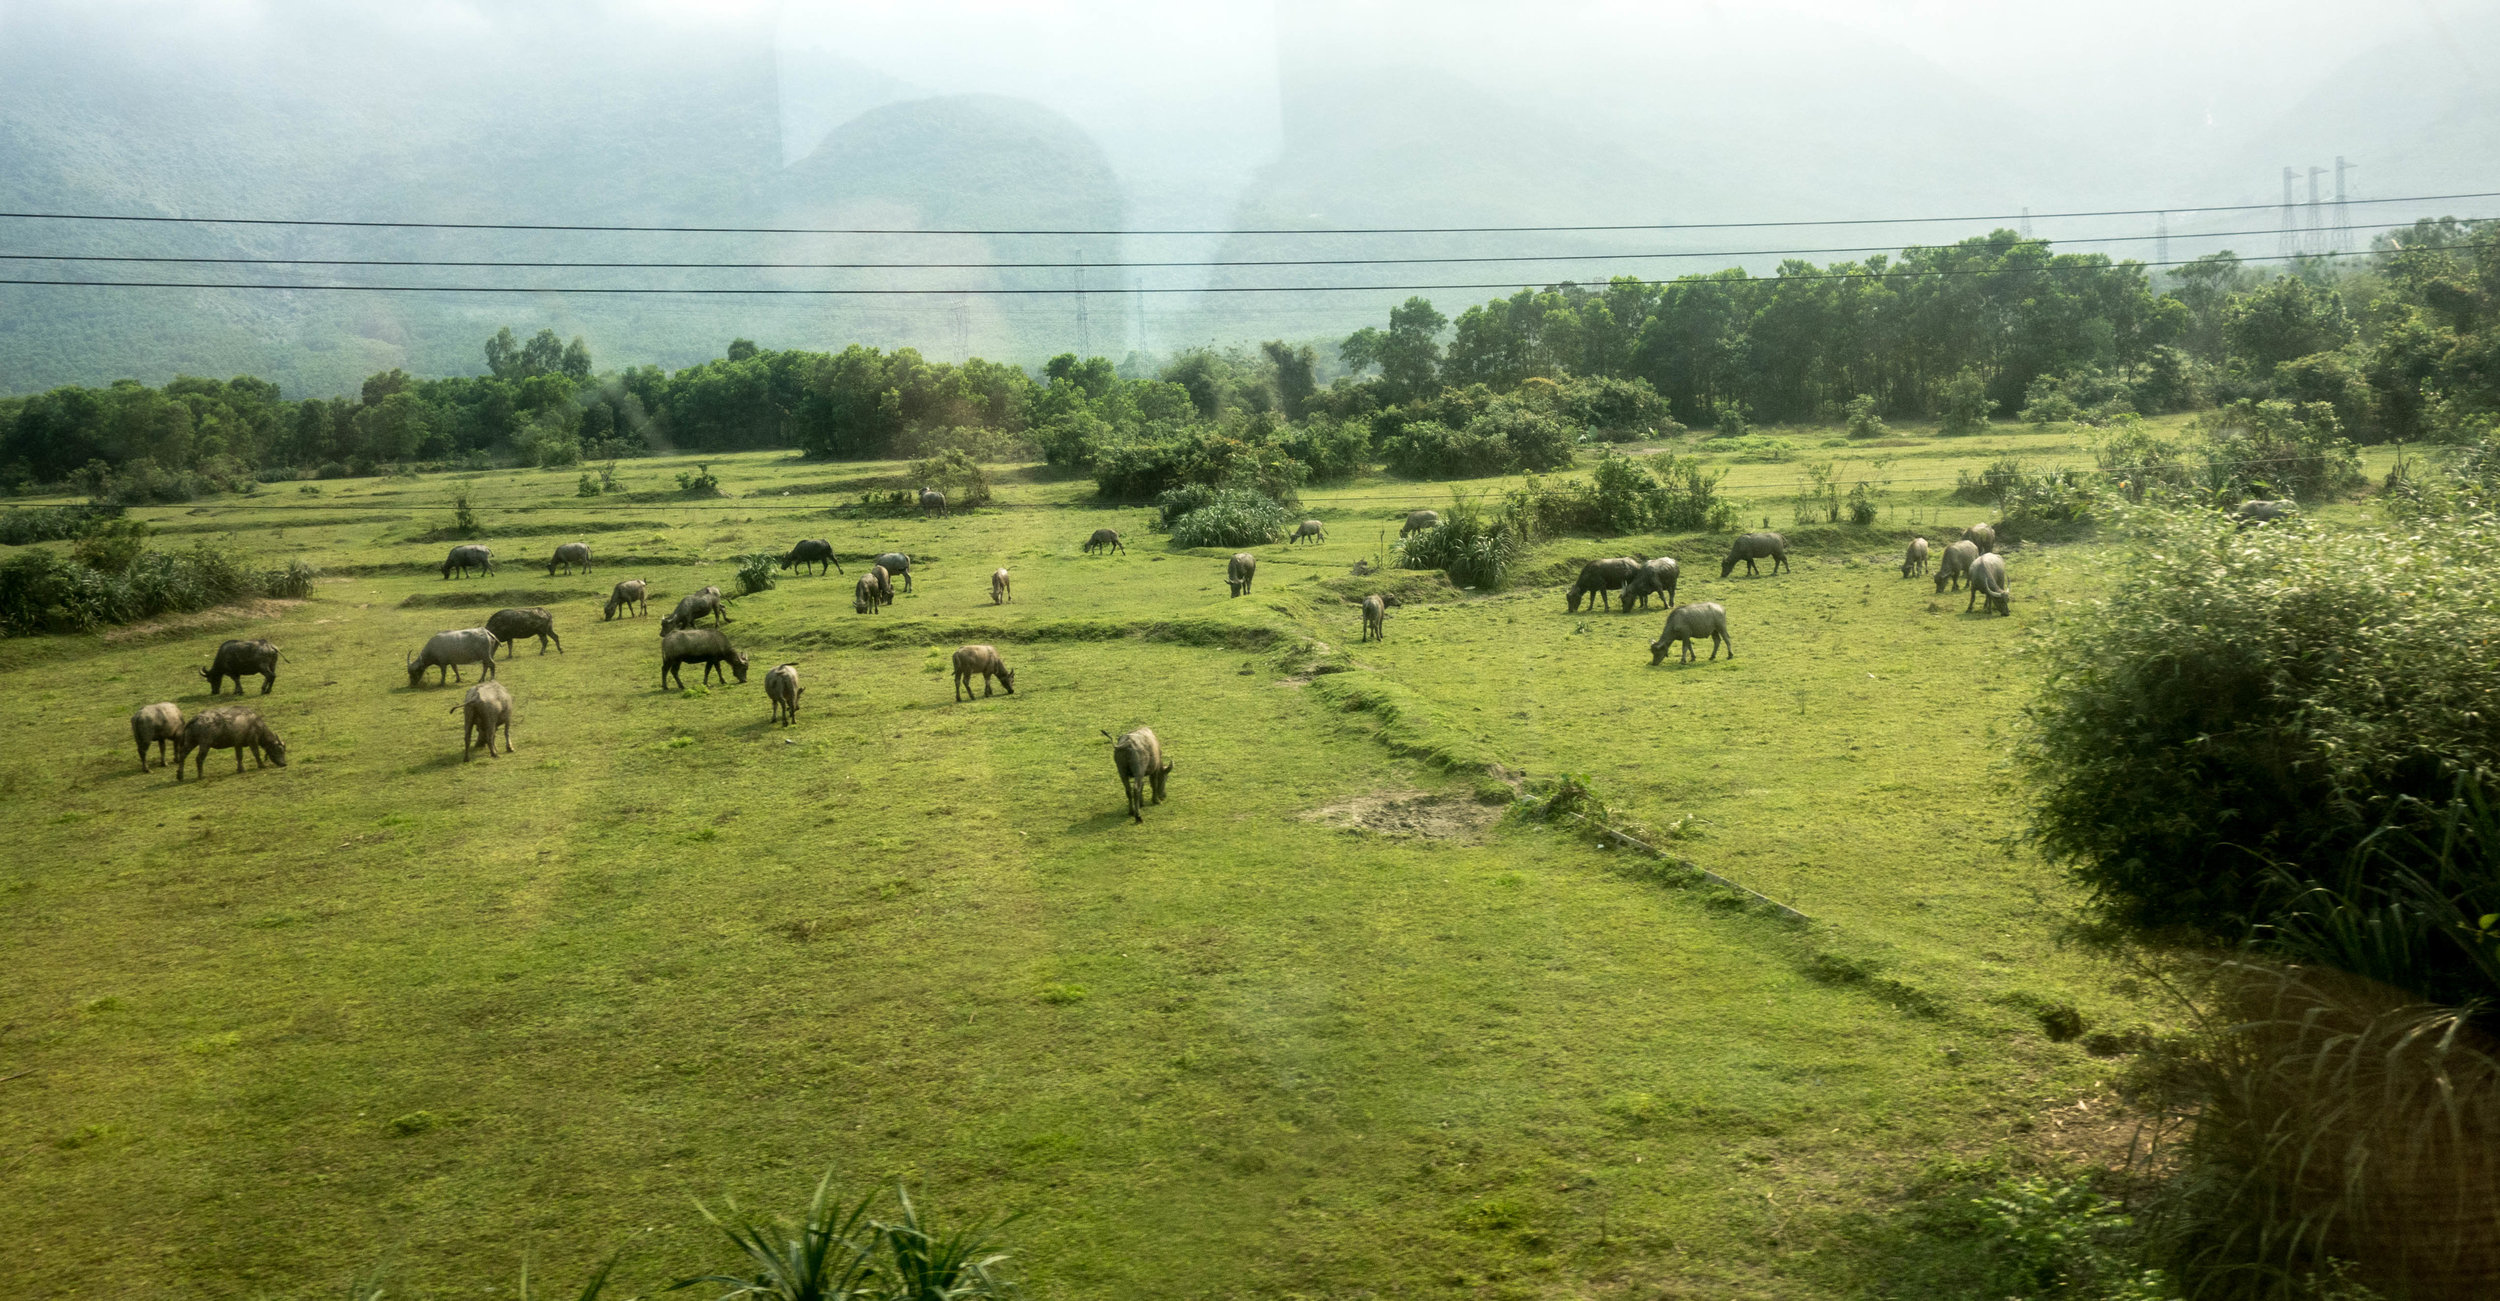 The view from our train over the Hoi Van Pass.